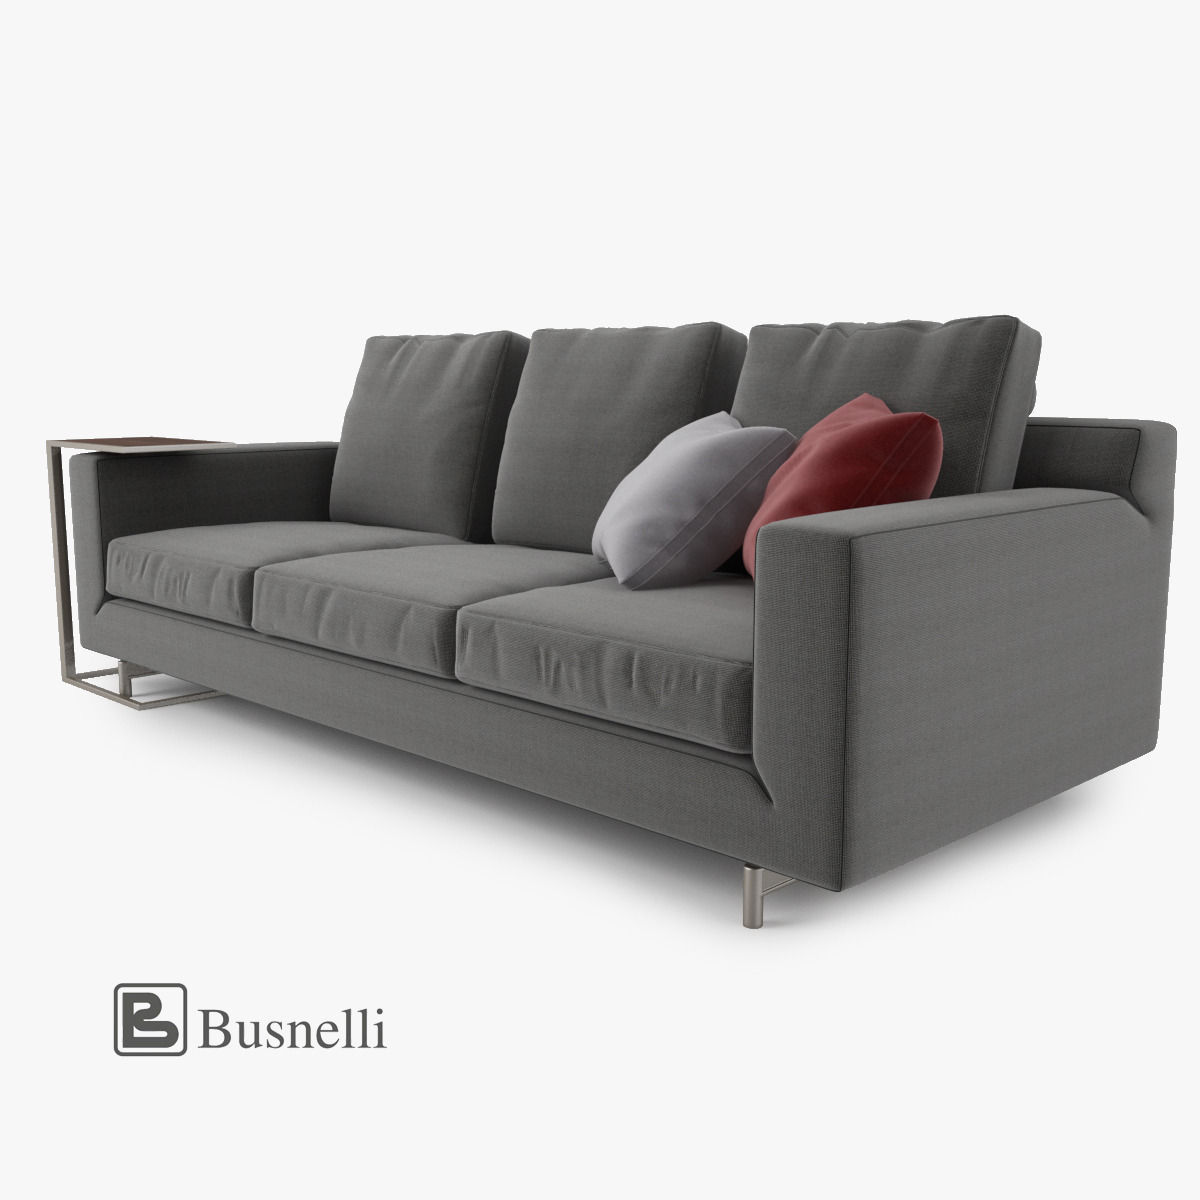 Busnelli taylor sofa 3 seat 3d model max obj fbx mtl for Sofa 3d model